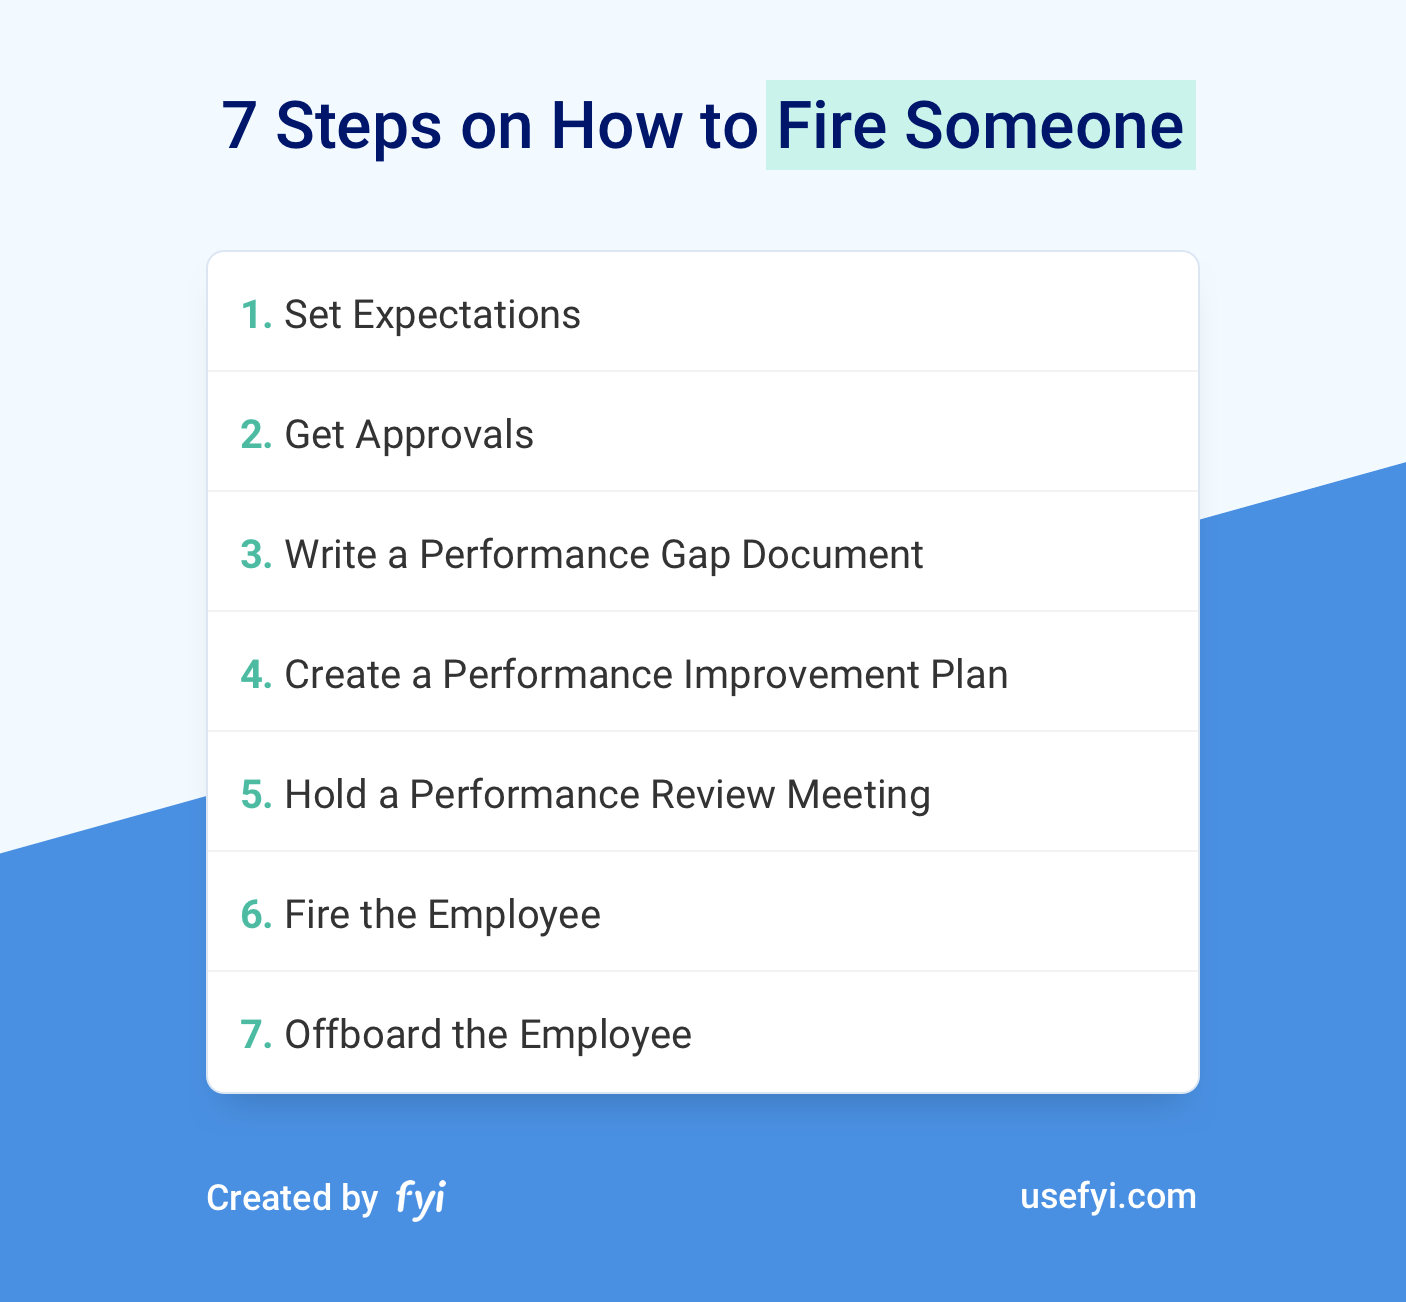 7 Steps on How to Fire Someone